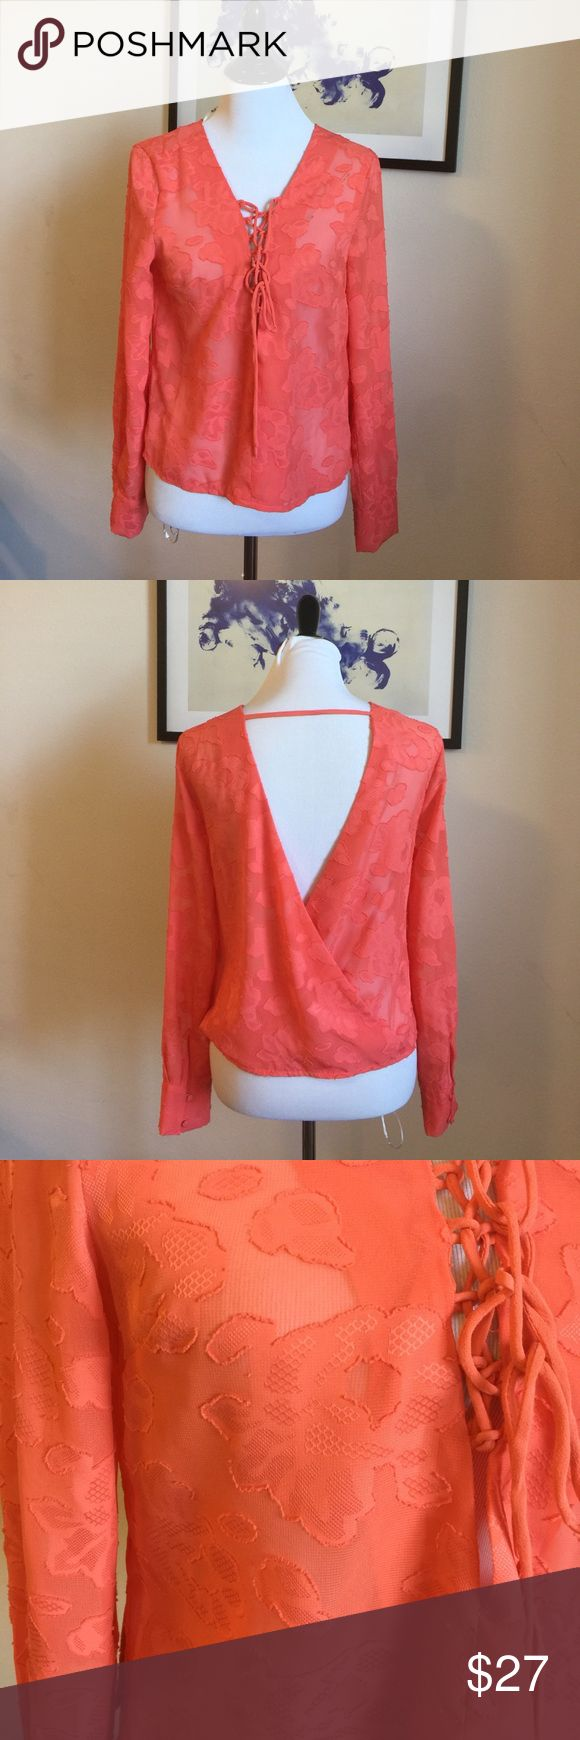 Brand New Miss Me Sheer Luck Blouse NWOT. Directly bought from Miss Me showroom. Brand New and never worn or used. A lace-up neckline, floral pattern, button cuffs, and V-back opening gives this semi-sheer blouse the look of romance! Pretty Coral color, can dress it up with heels or dress it down with a pair of shorts.                    🌟Top Rated seller⚡️Fast shipper😘Willing to negotiate Miss Me Tops Blouses